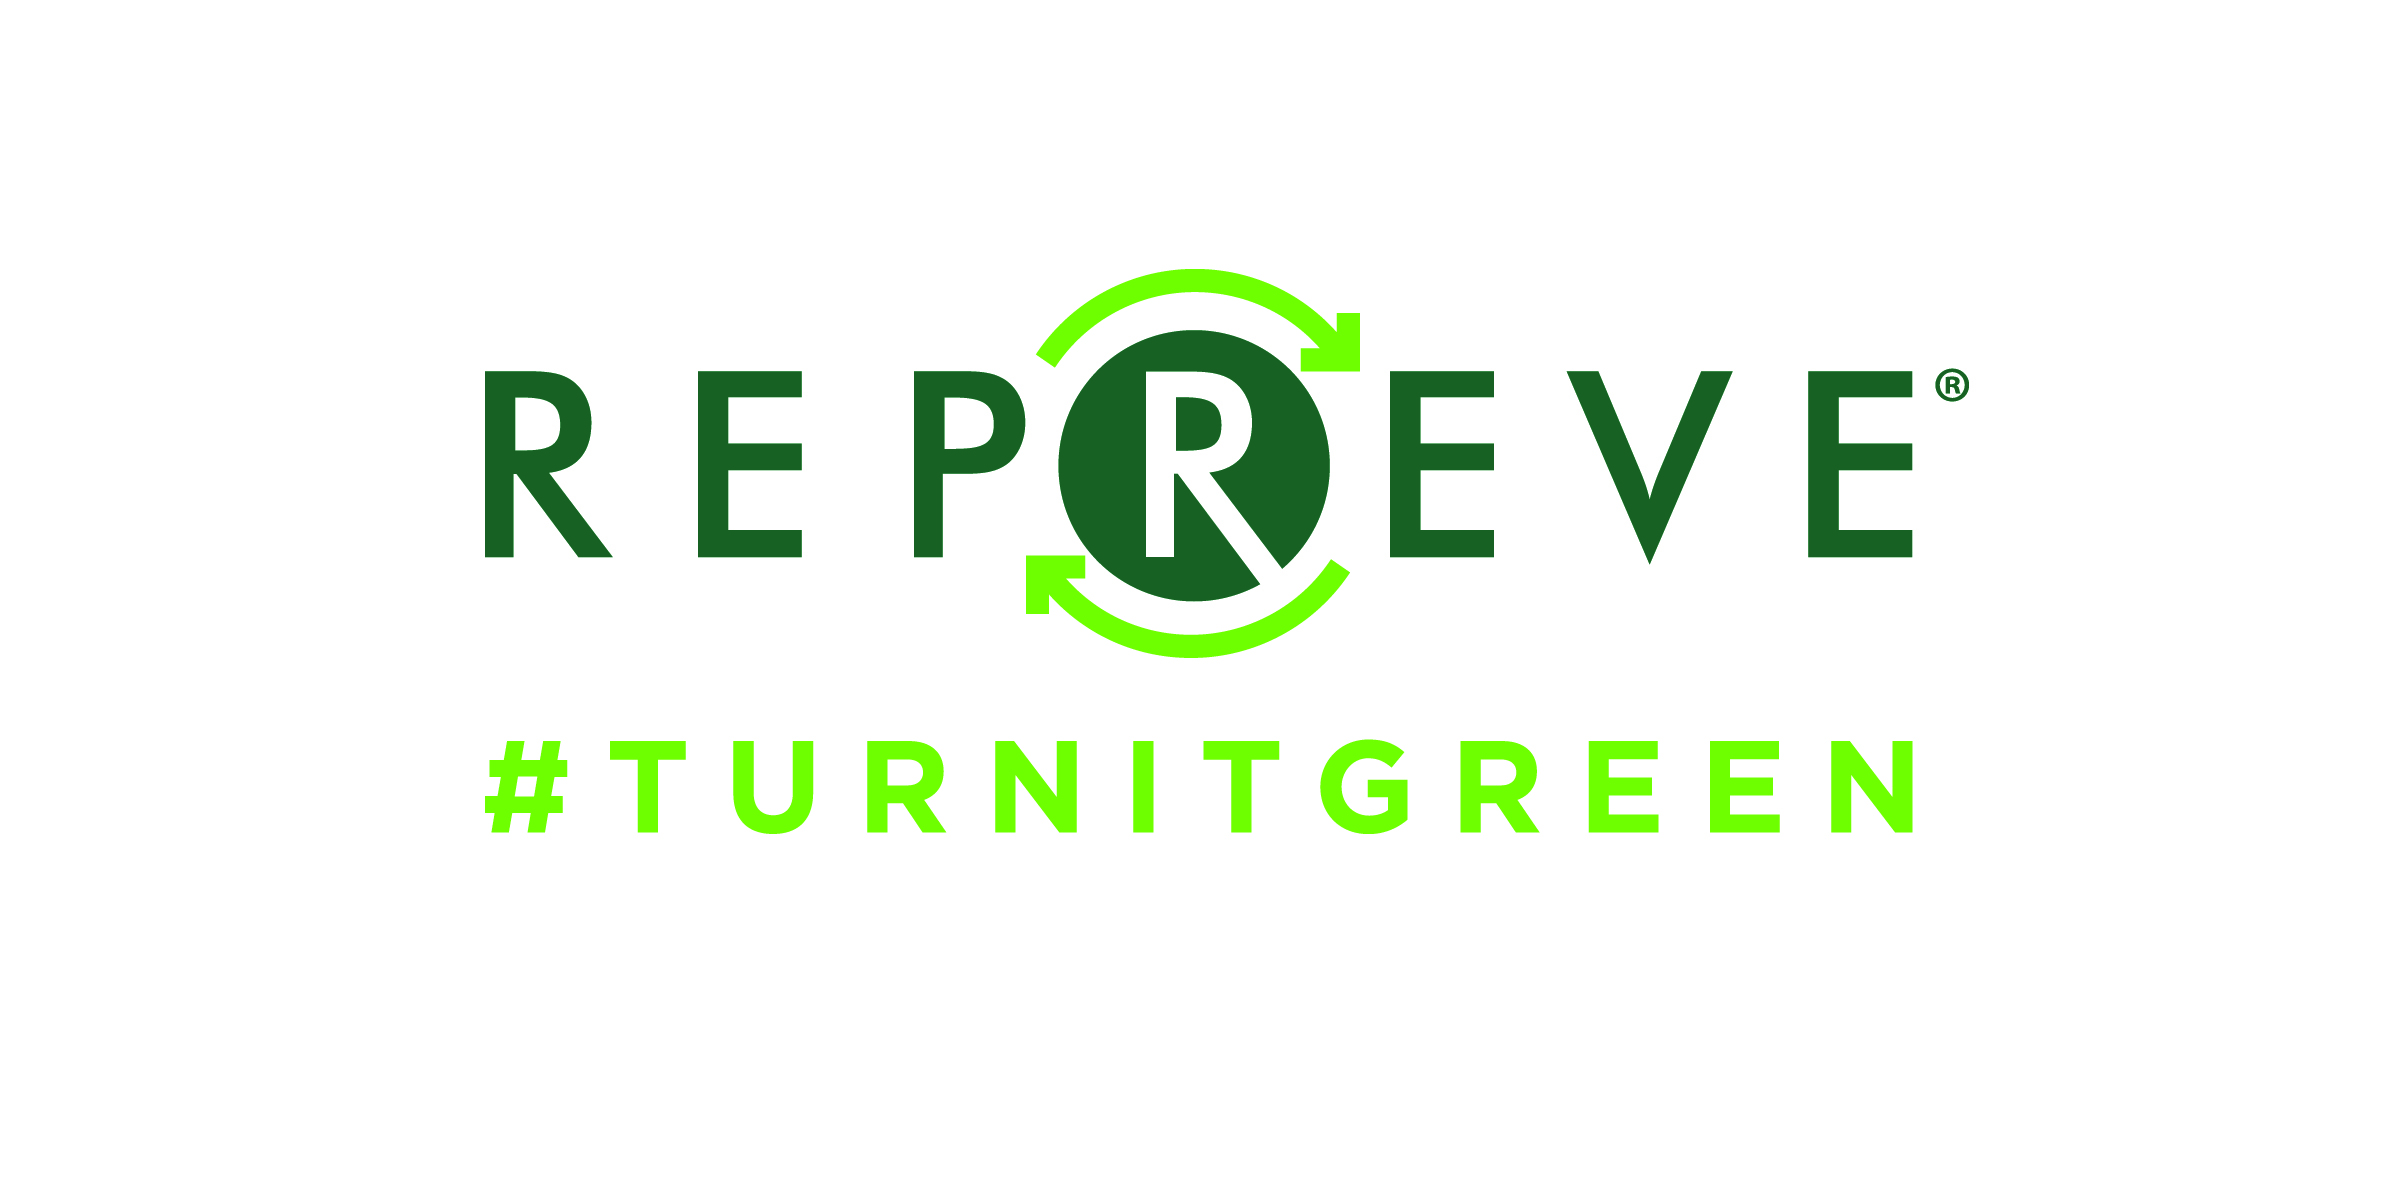 Diy Home Decor Projects Turn It Green With Repreve Recycled Plastic Bottle Products